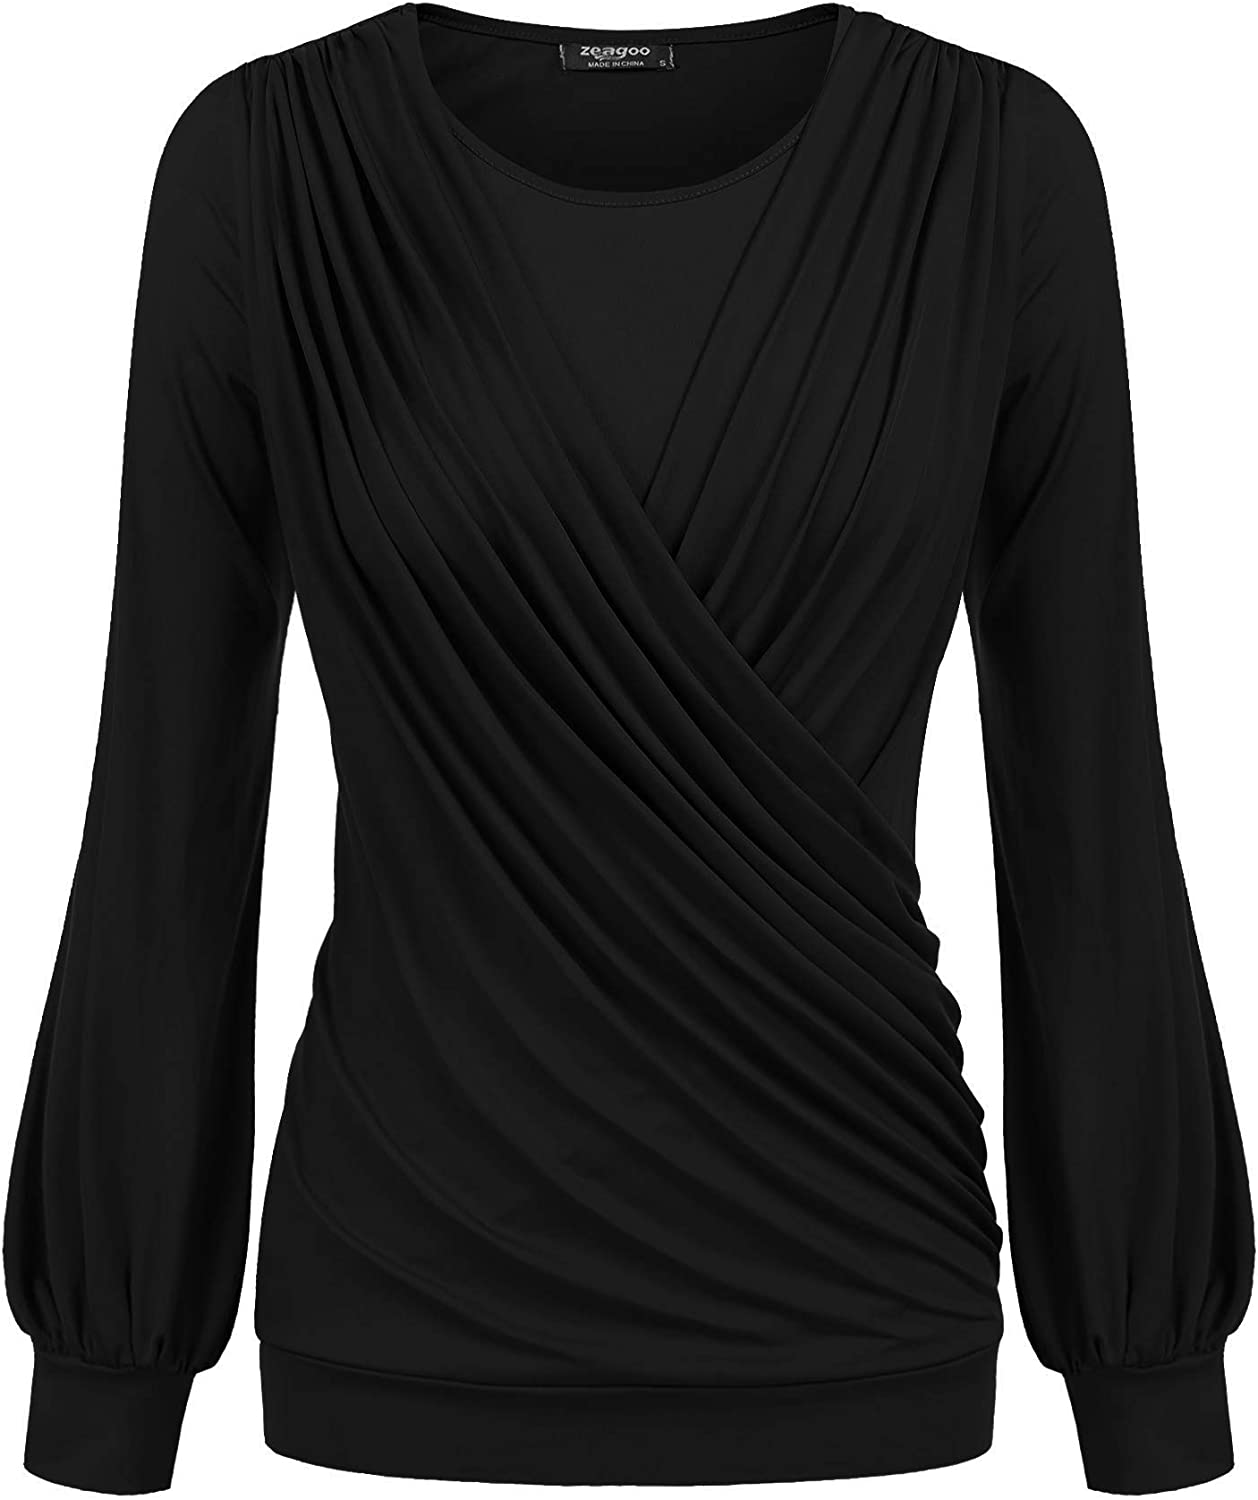 Zeagoo Women Drape Tops Stretchy Round Neck Tops Long Sleeve Front Pleated Blouse